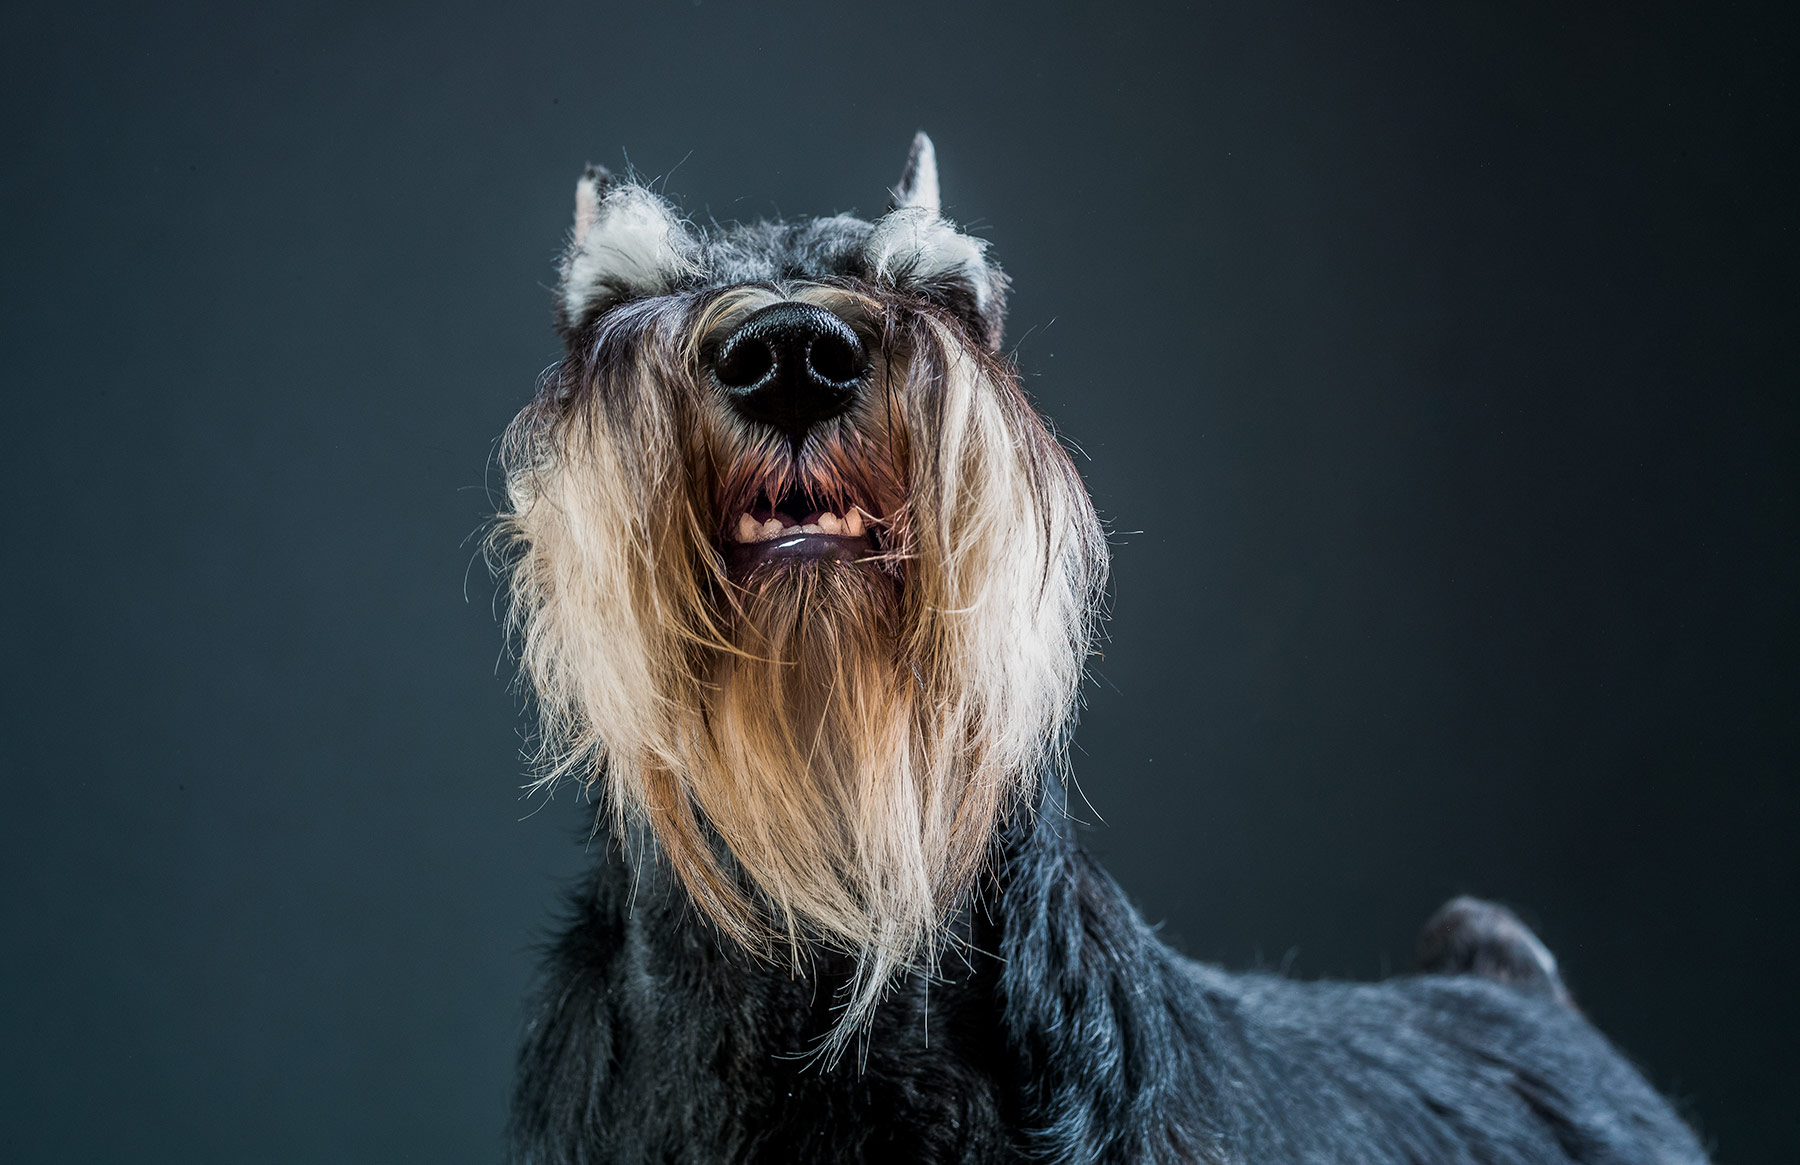 A-studio-portrait-of-a-Mini-Schnauzer-dog-against-a-black-background